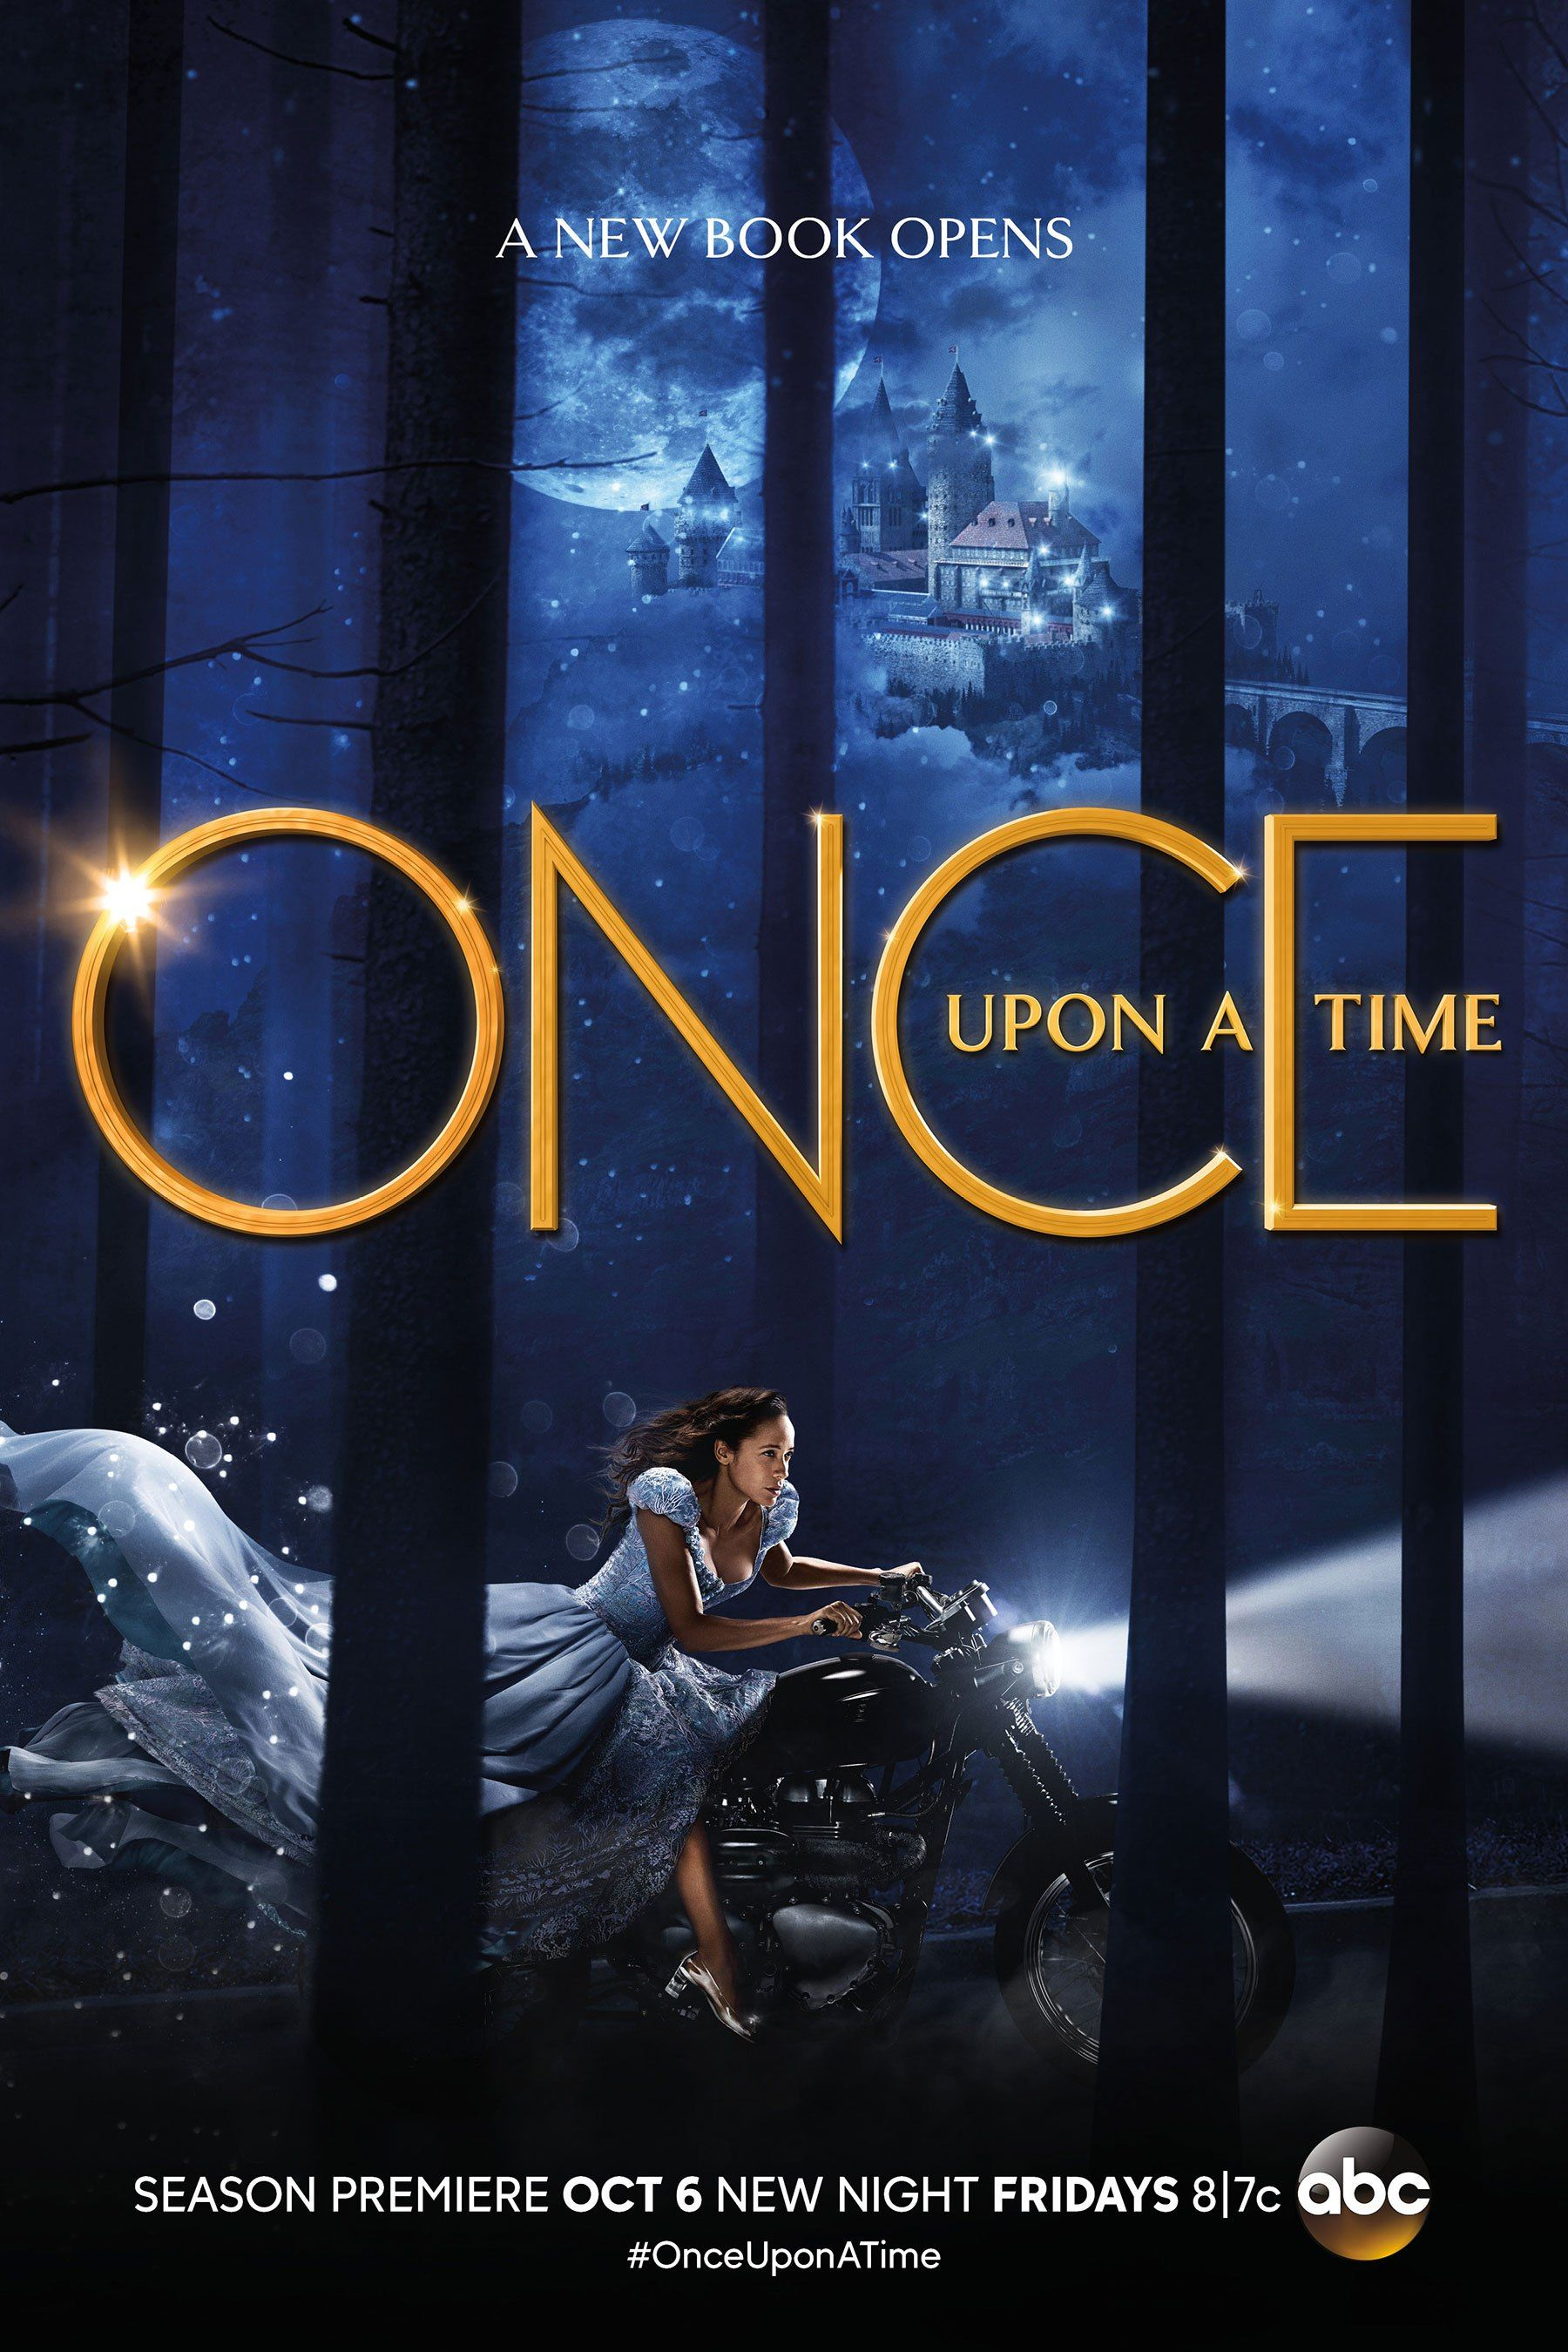 Once Upon A Time Cinderella Takes Flight In Exclusive New Poster